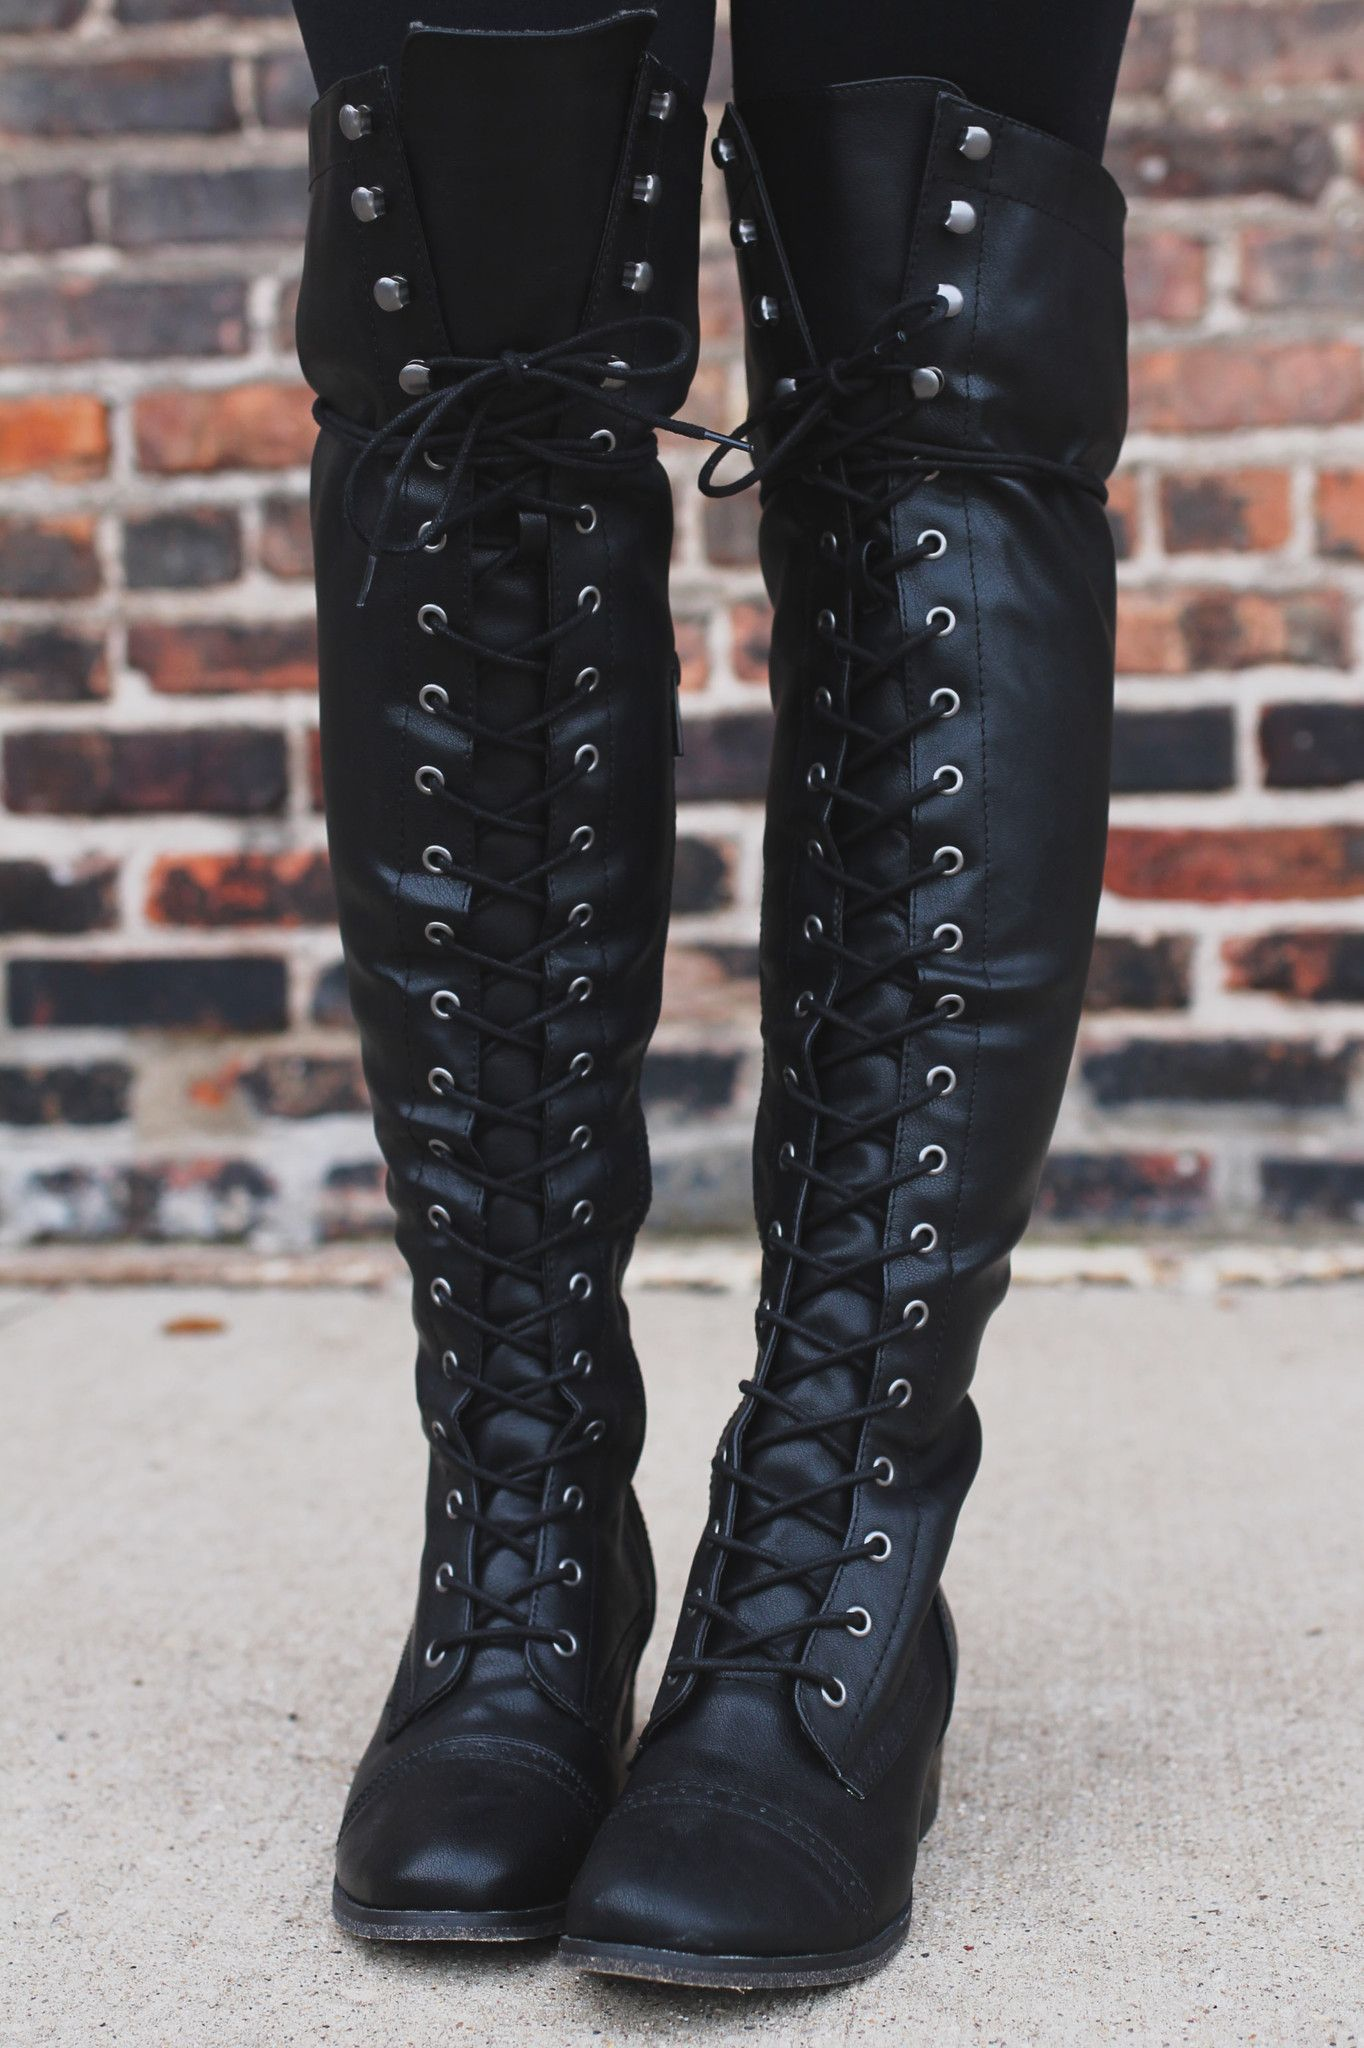 c07f854e88 Black Lace Up Tall Riding Boot – UOIOnline.com: Women's Clothing Boutique